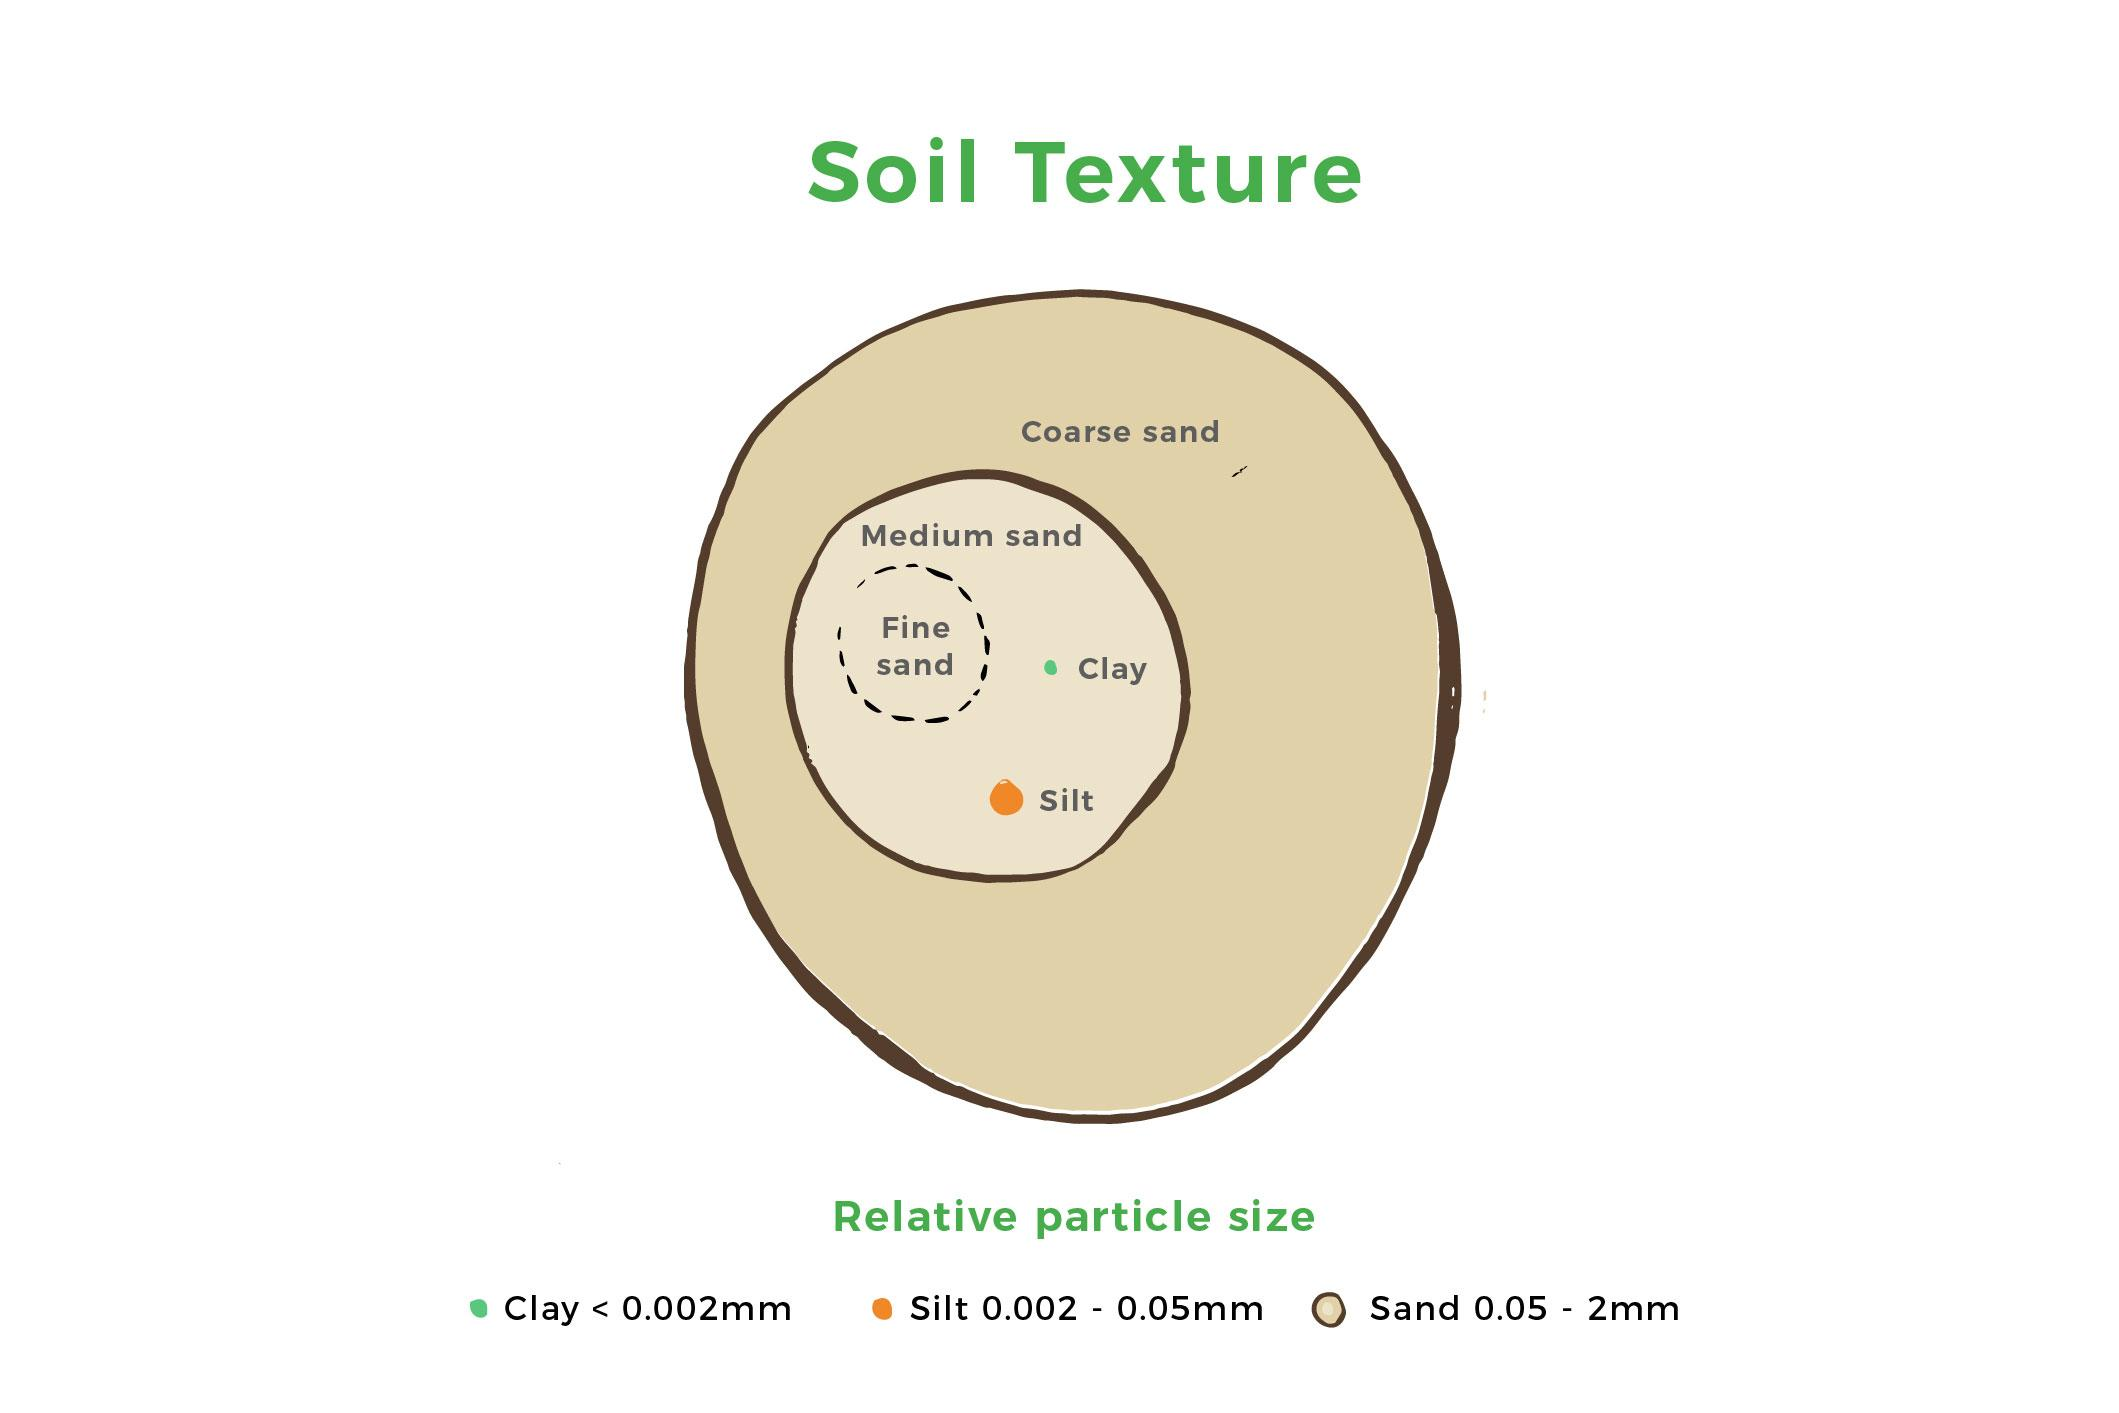 Soil texture relates to the mixture of three particle types - sand, silt and clay. GrowingObservatory.org